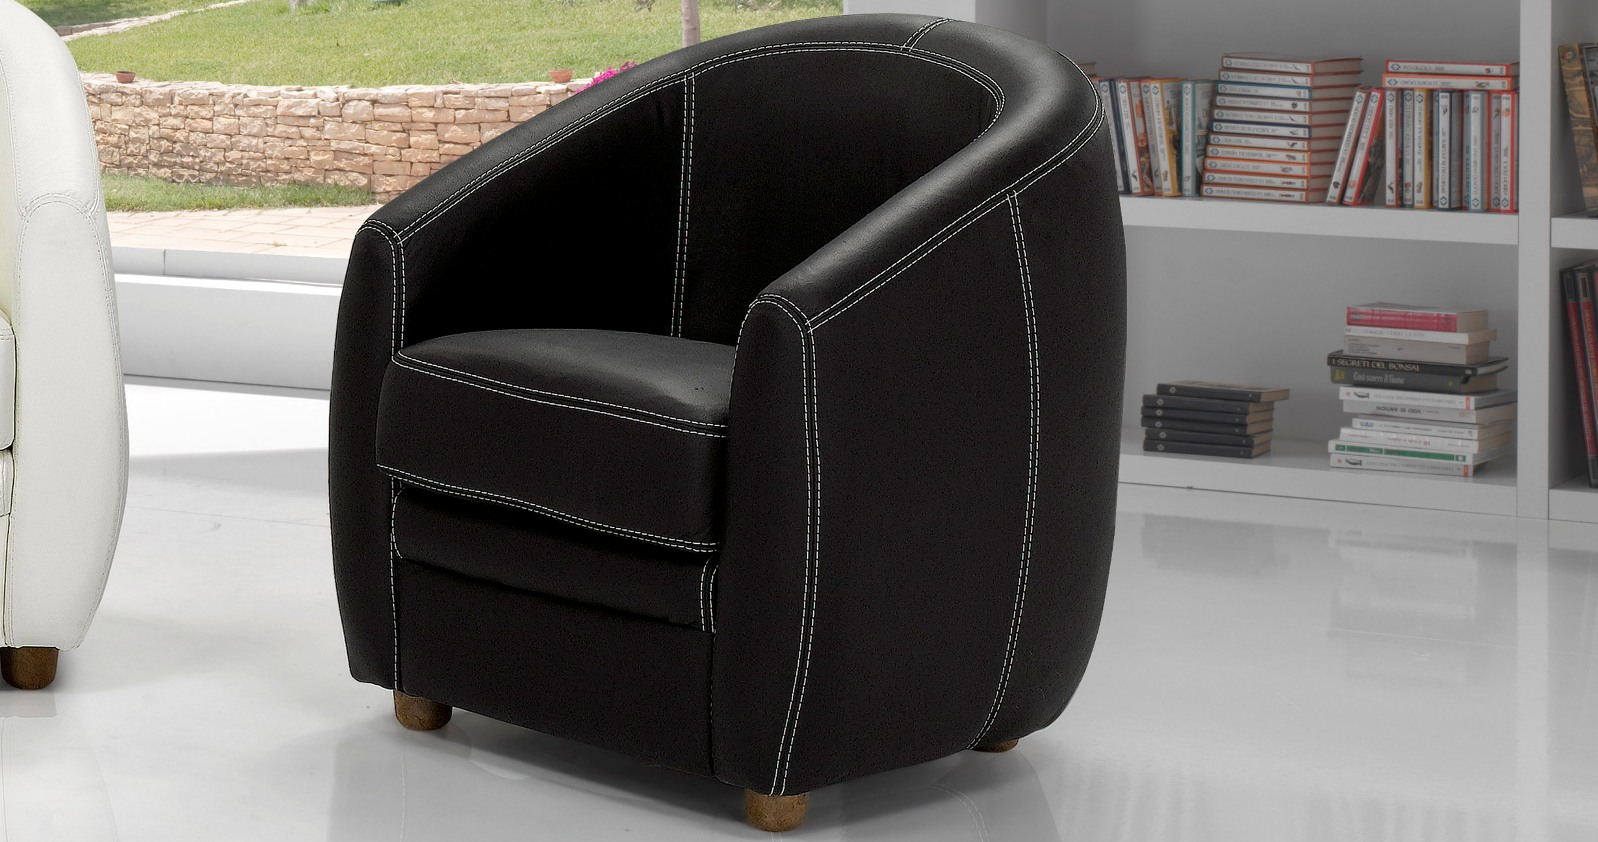 fauteuil asti faible encombrement. Black Bedroom Furniture Sets. Home Design Ideas